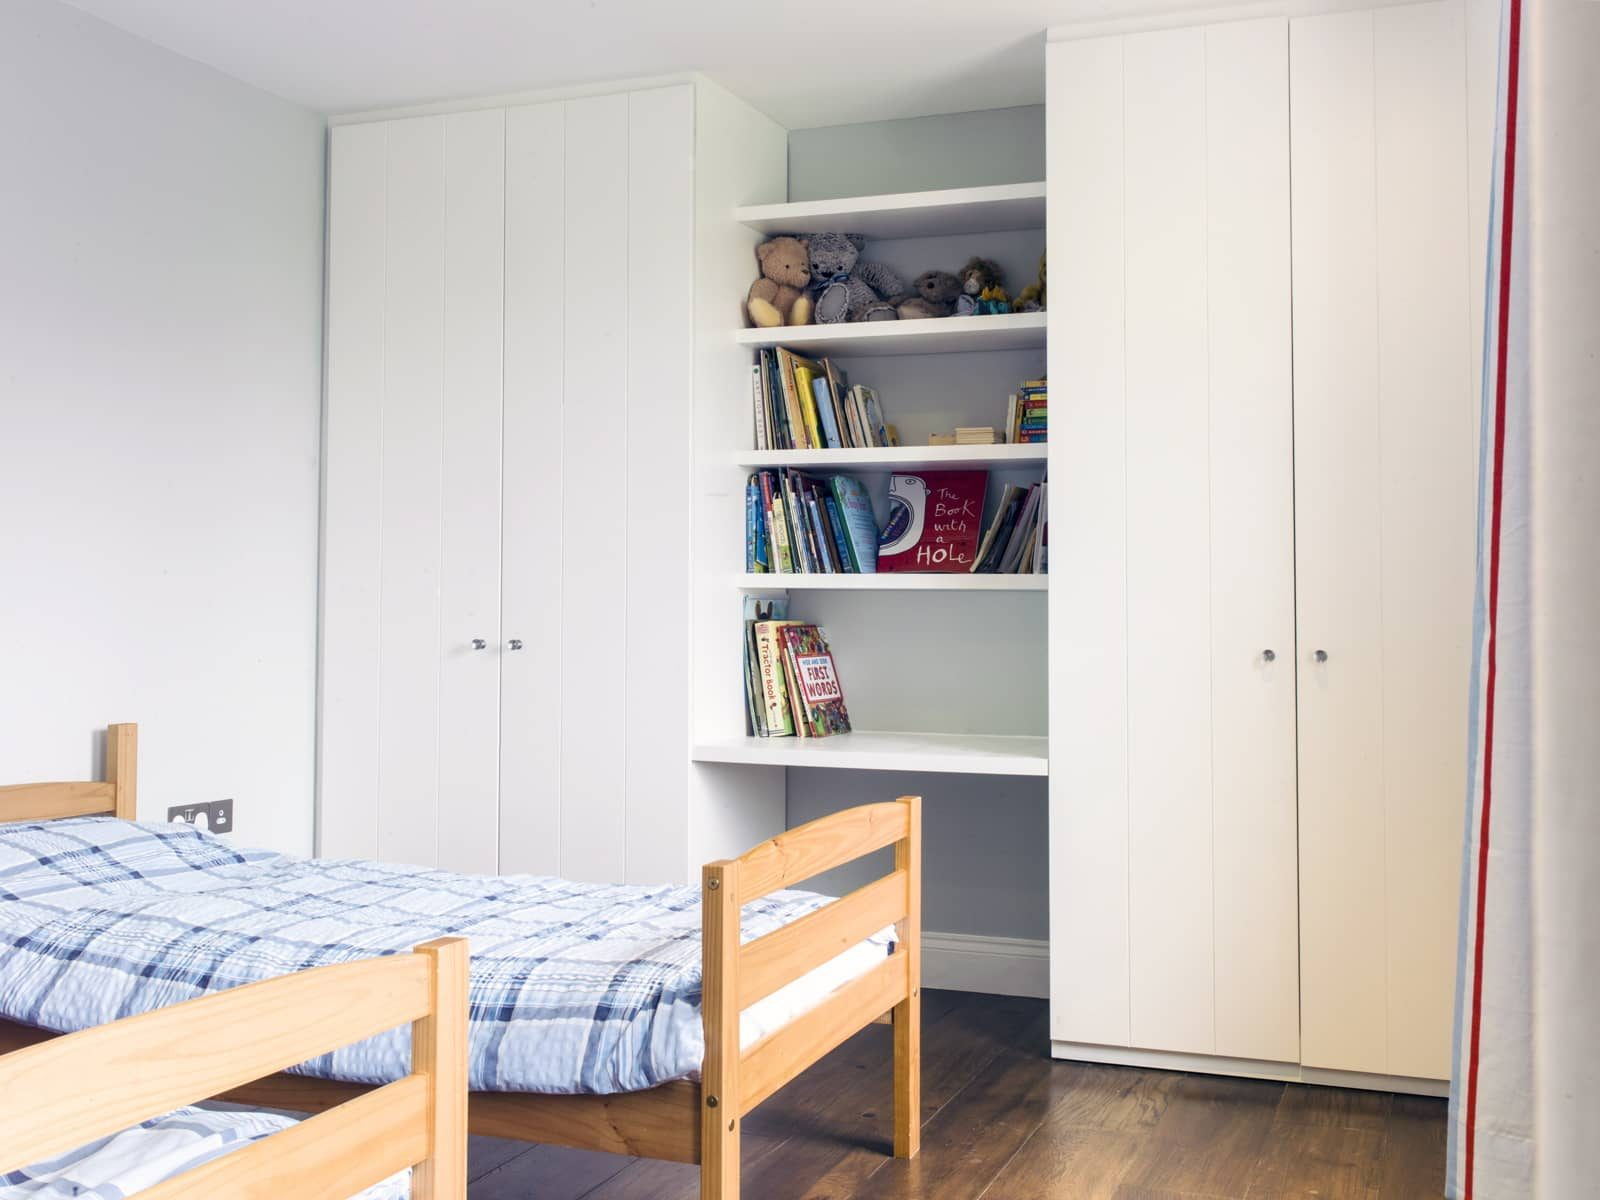 Fitted wardrobes in children's bedroom